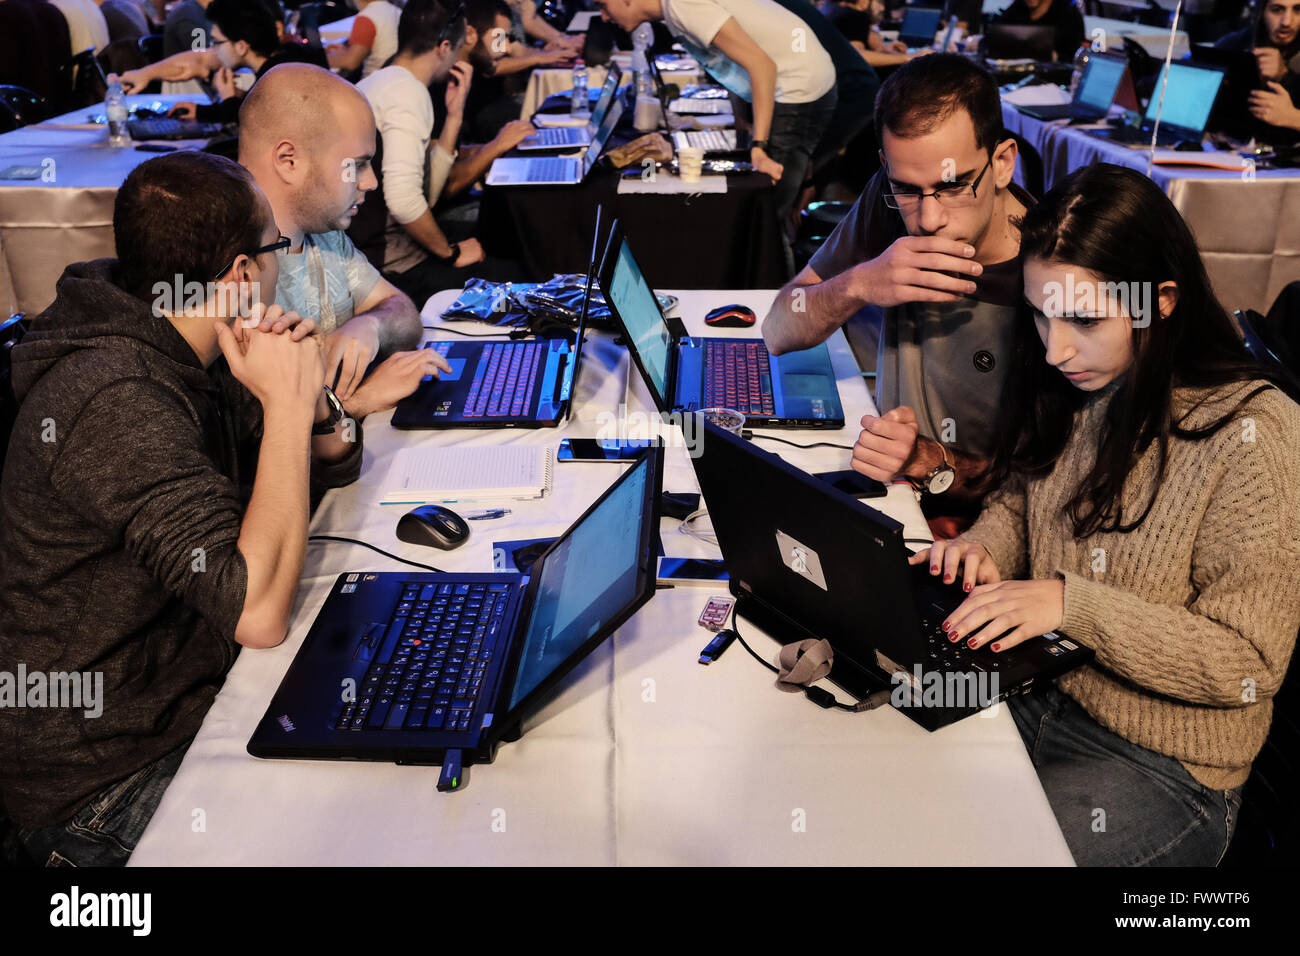 Jerusalem, Israel.  7th April, 2016. The First Station complex hosts Cyber (K)night 2016 in which teams compete Stock Photo